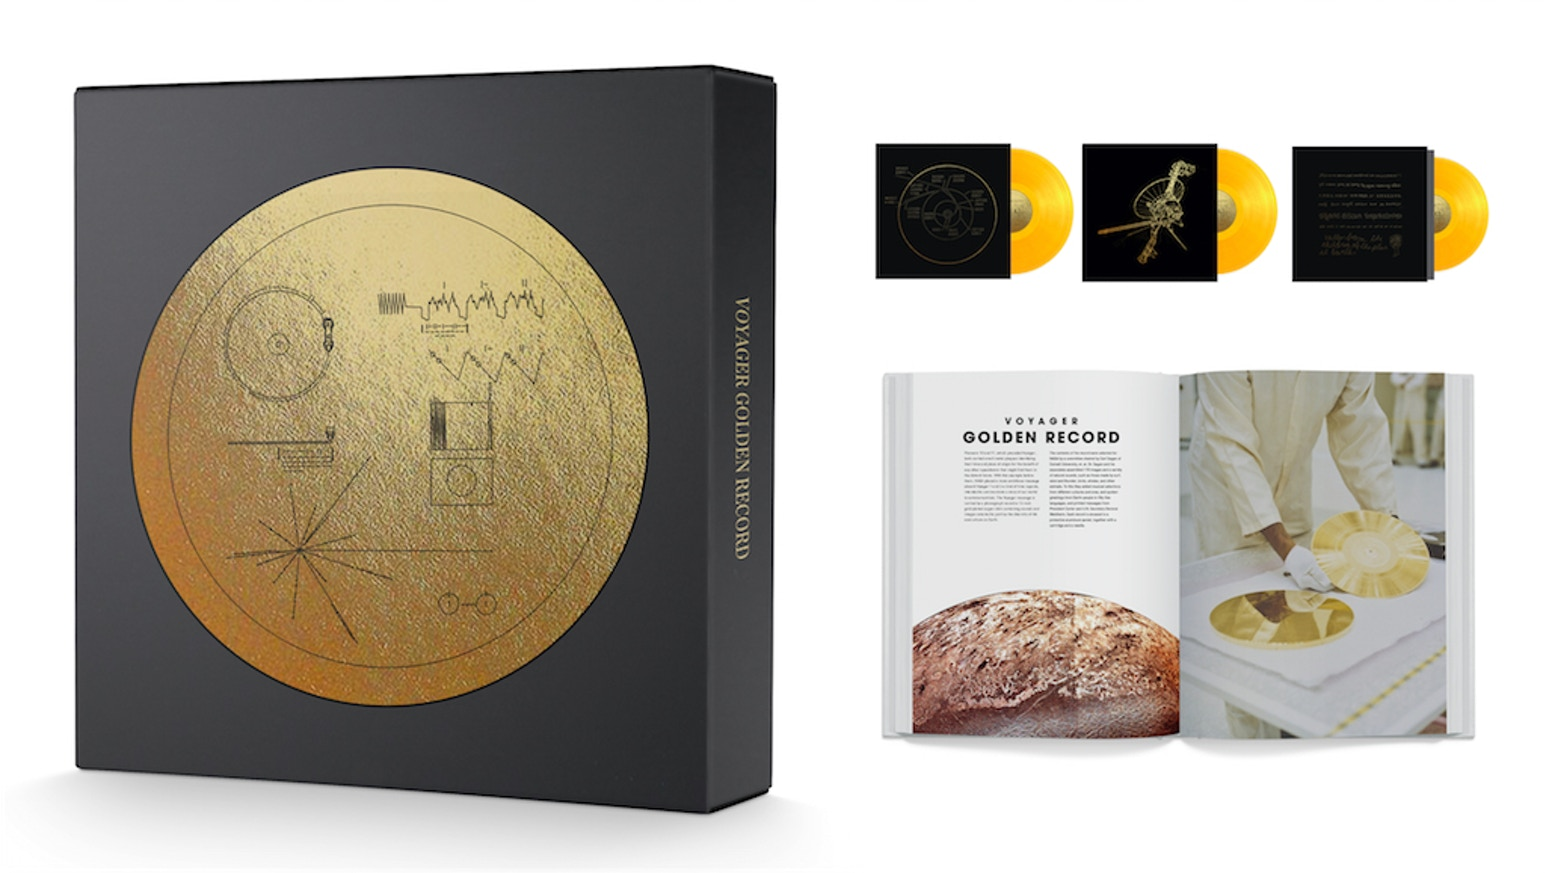 Experience the historic interstellar message for extraterrestrials the way it was meant to be played. The Voyager Golden Record is now available from Ozma Records as a 3xLP Box Set and 2xCD-Book edition.